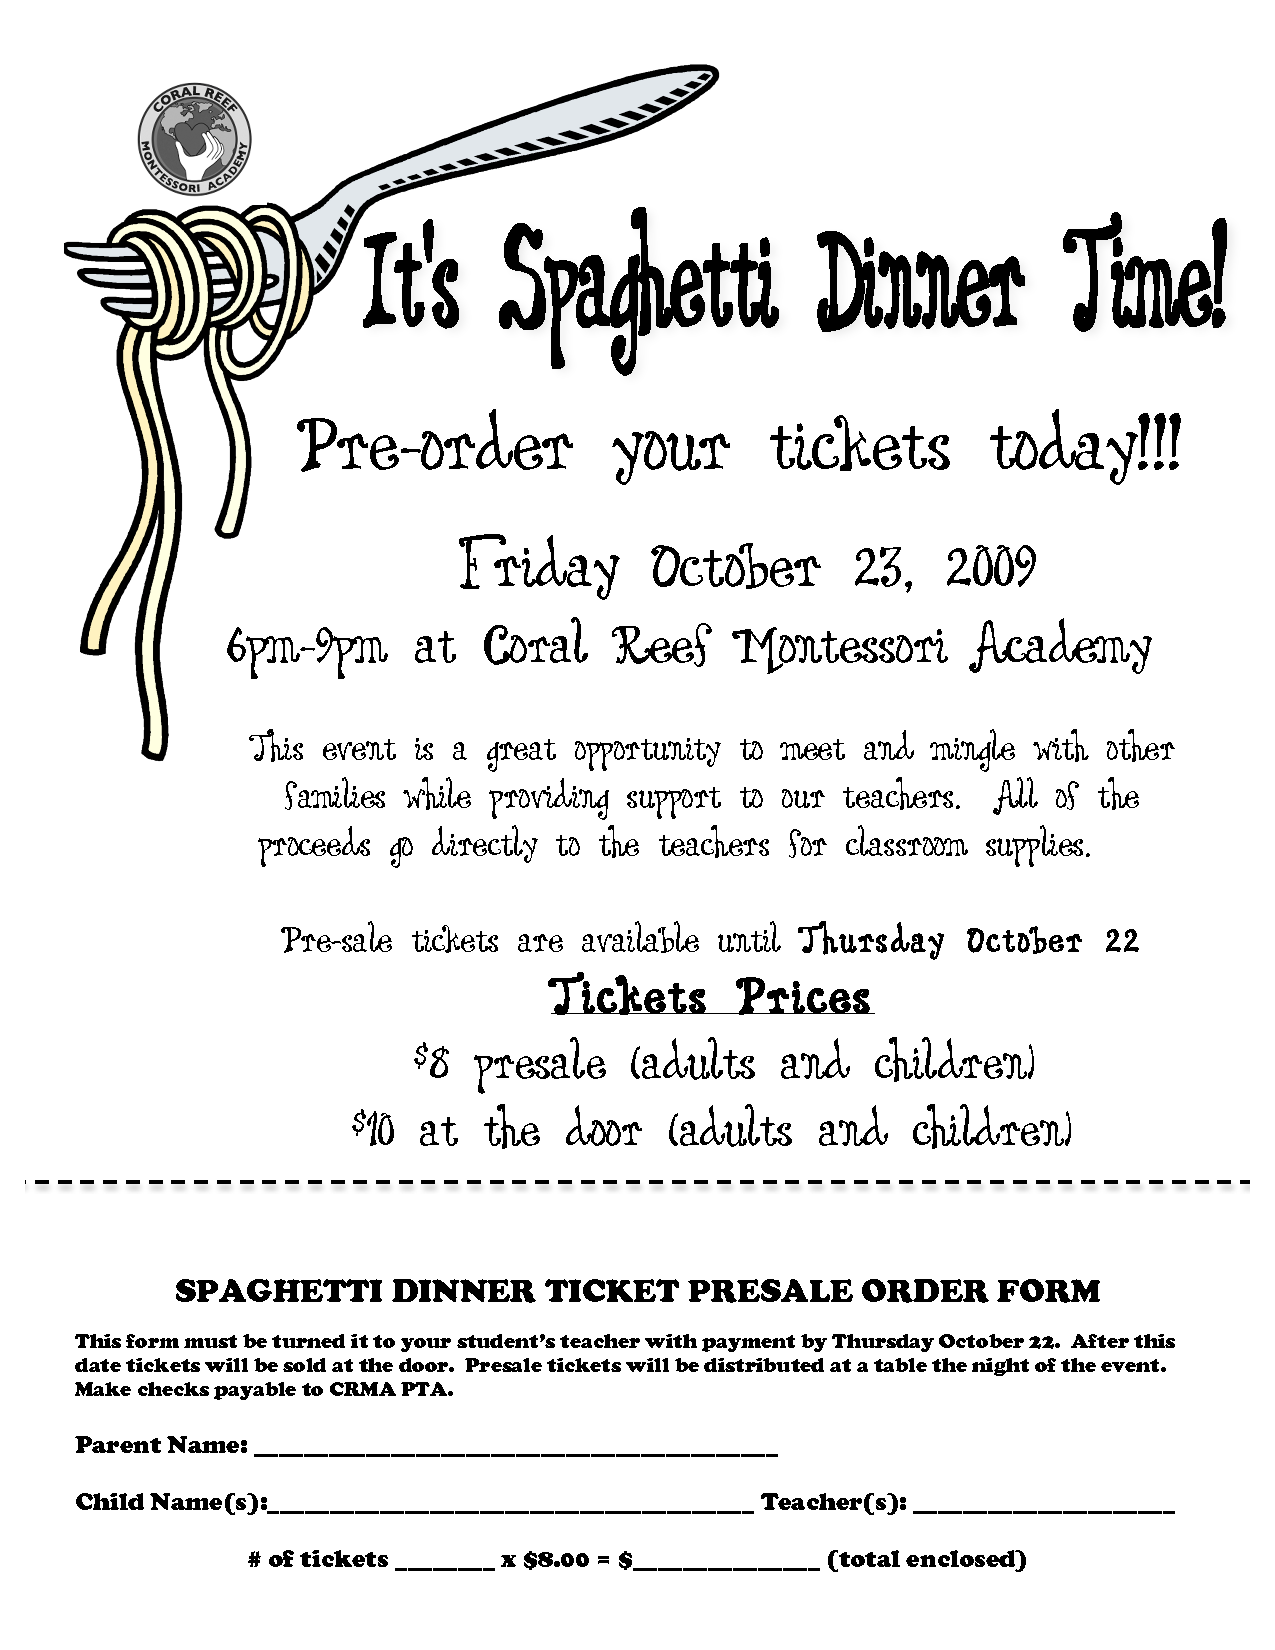 Spaghetti Dinner Ticket Template | SPAGHETTI DINNER TICKET PRESALE ORDER  FORM  Dinner Tickets Template